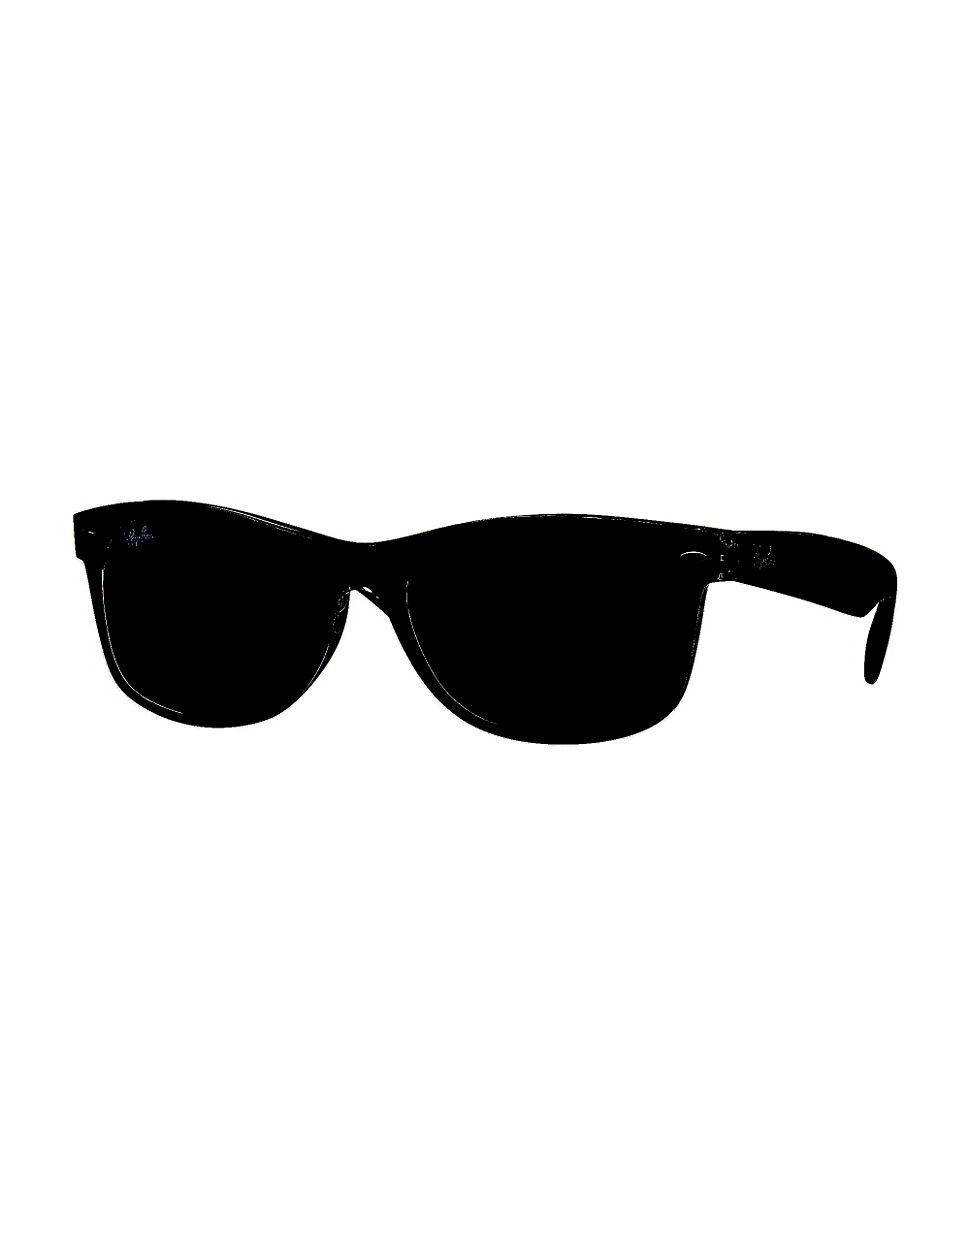 Drawn sunglasses Drawing drawing wayfarer wayfarer ban